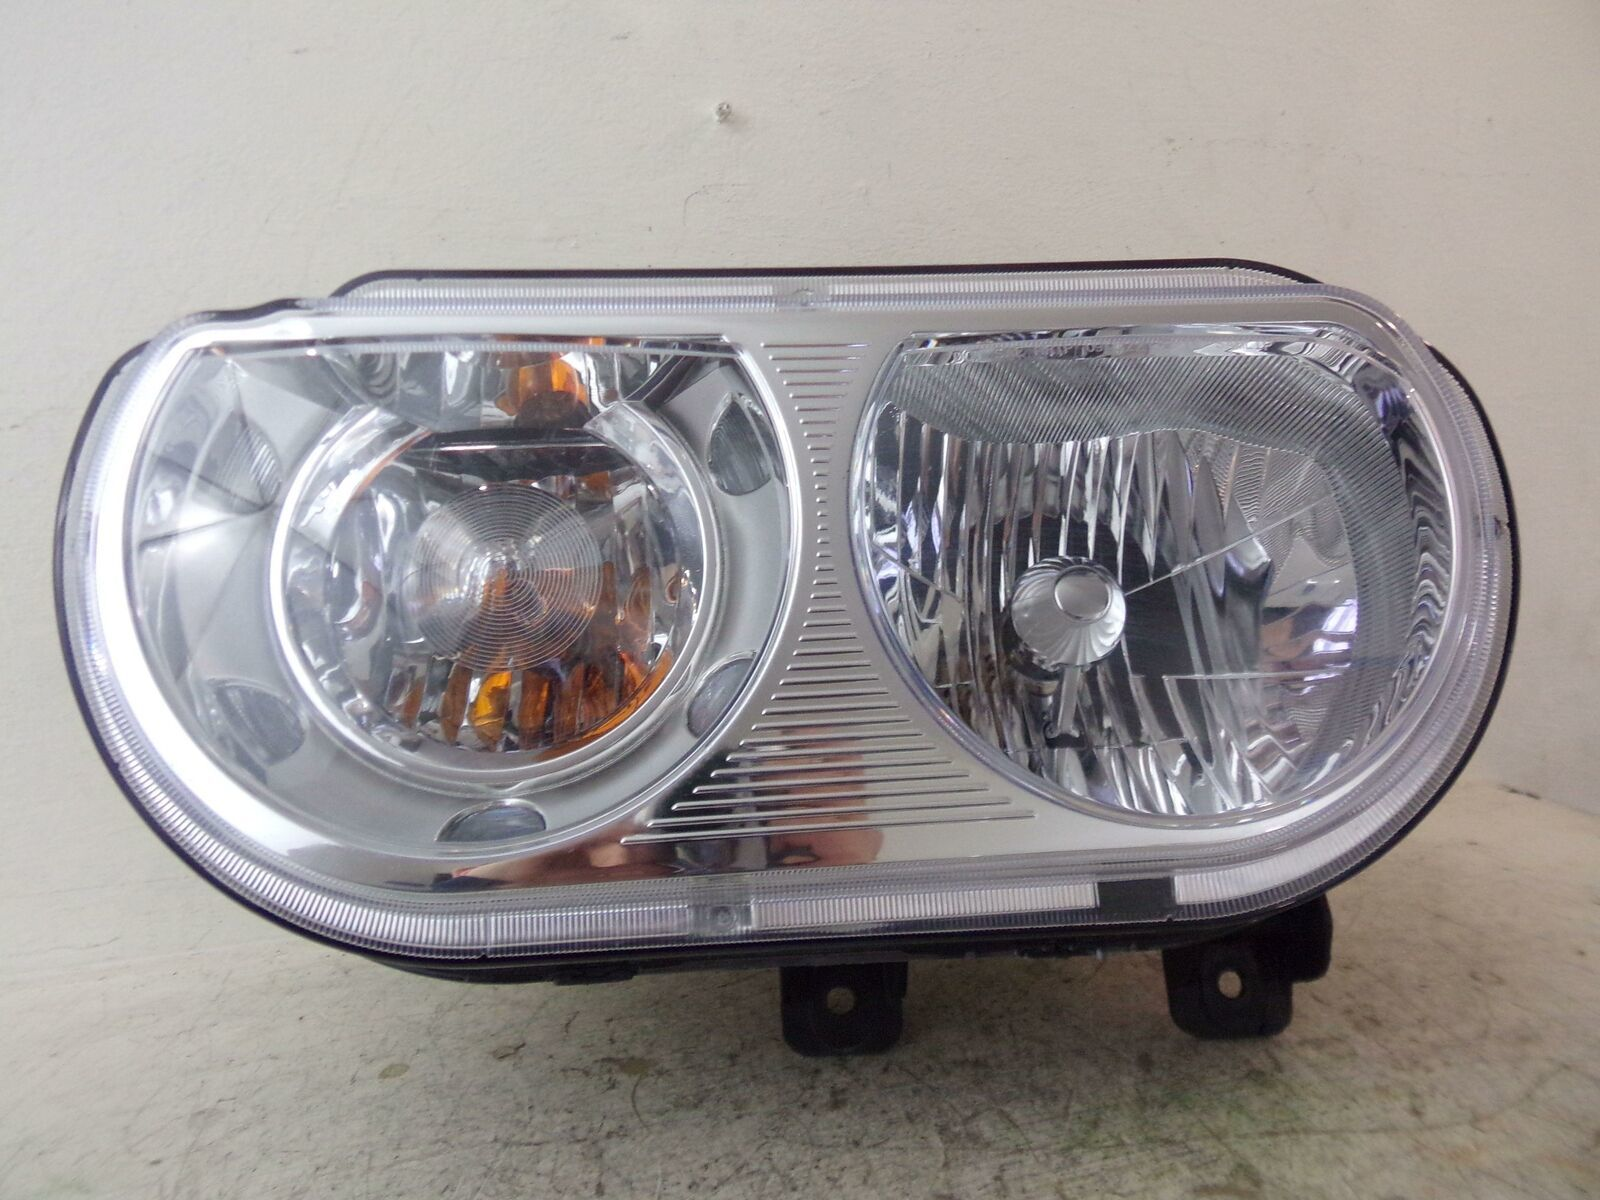 Primary image for 2008 2009 2010 2011 2012 2013 2014 DODGE CHALLENGER DRIVER LH HEADLIGHT OEM 331